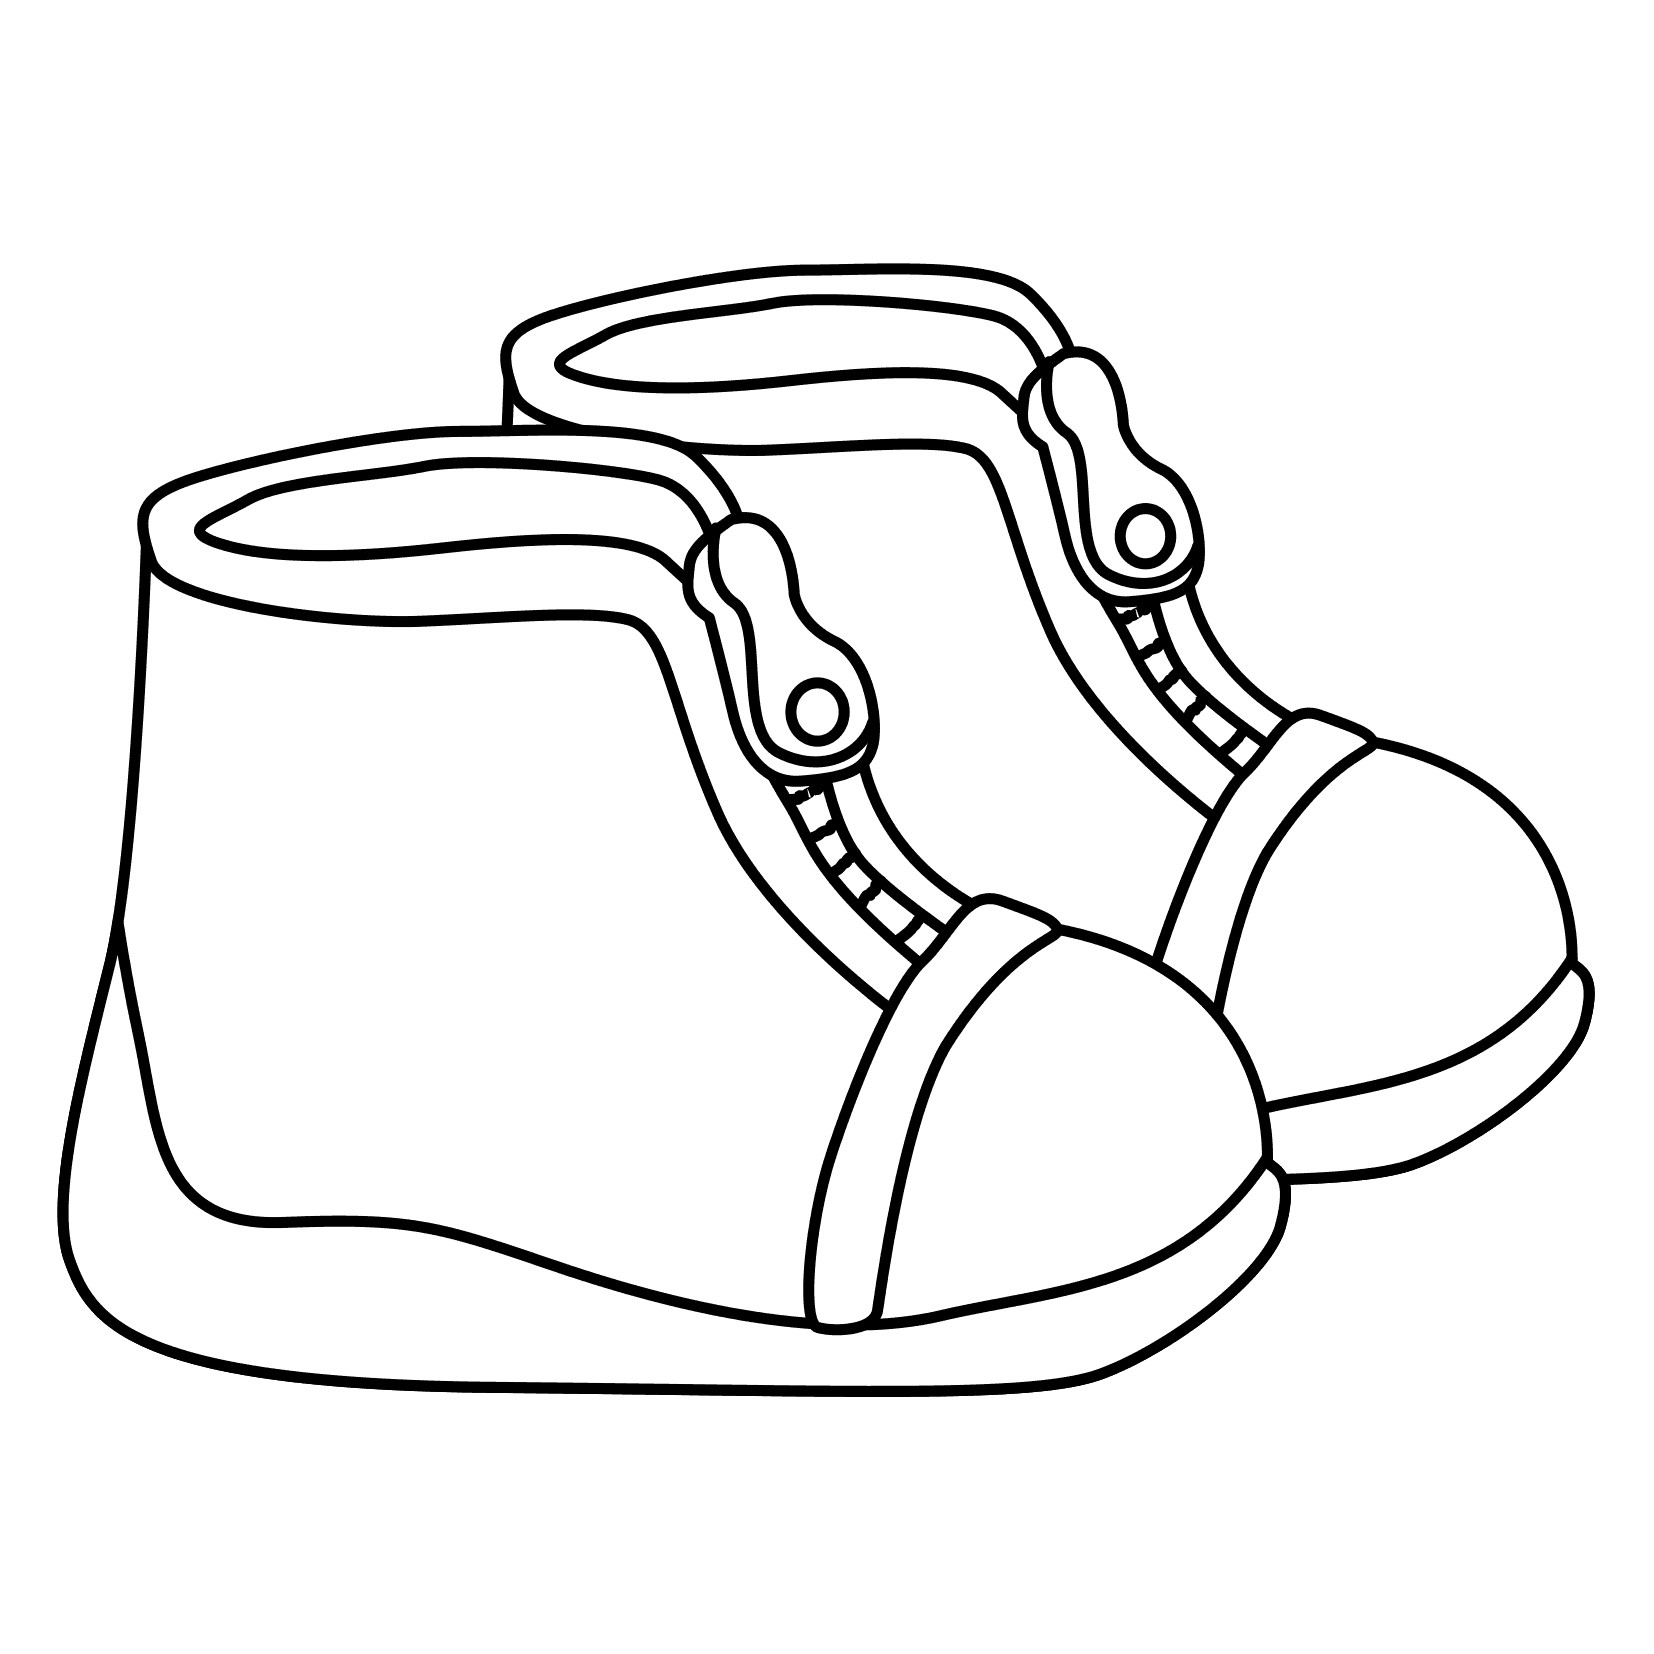 1654x1654 Coloring Pages Of Kd Shoes Copy Coloring Pages Nike Shoes Fresh